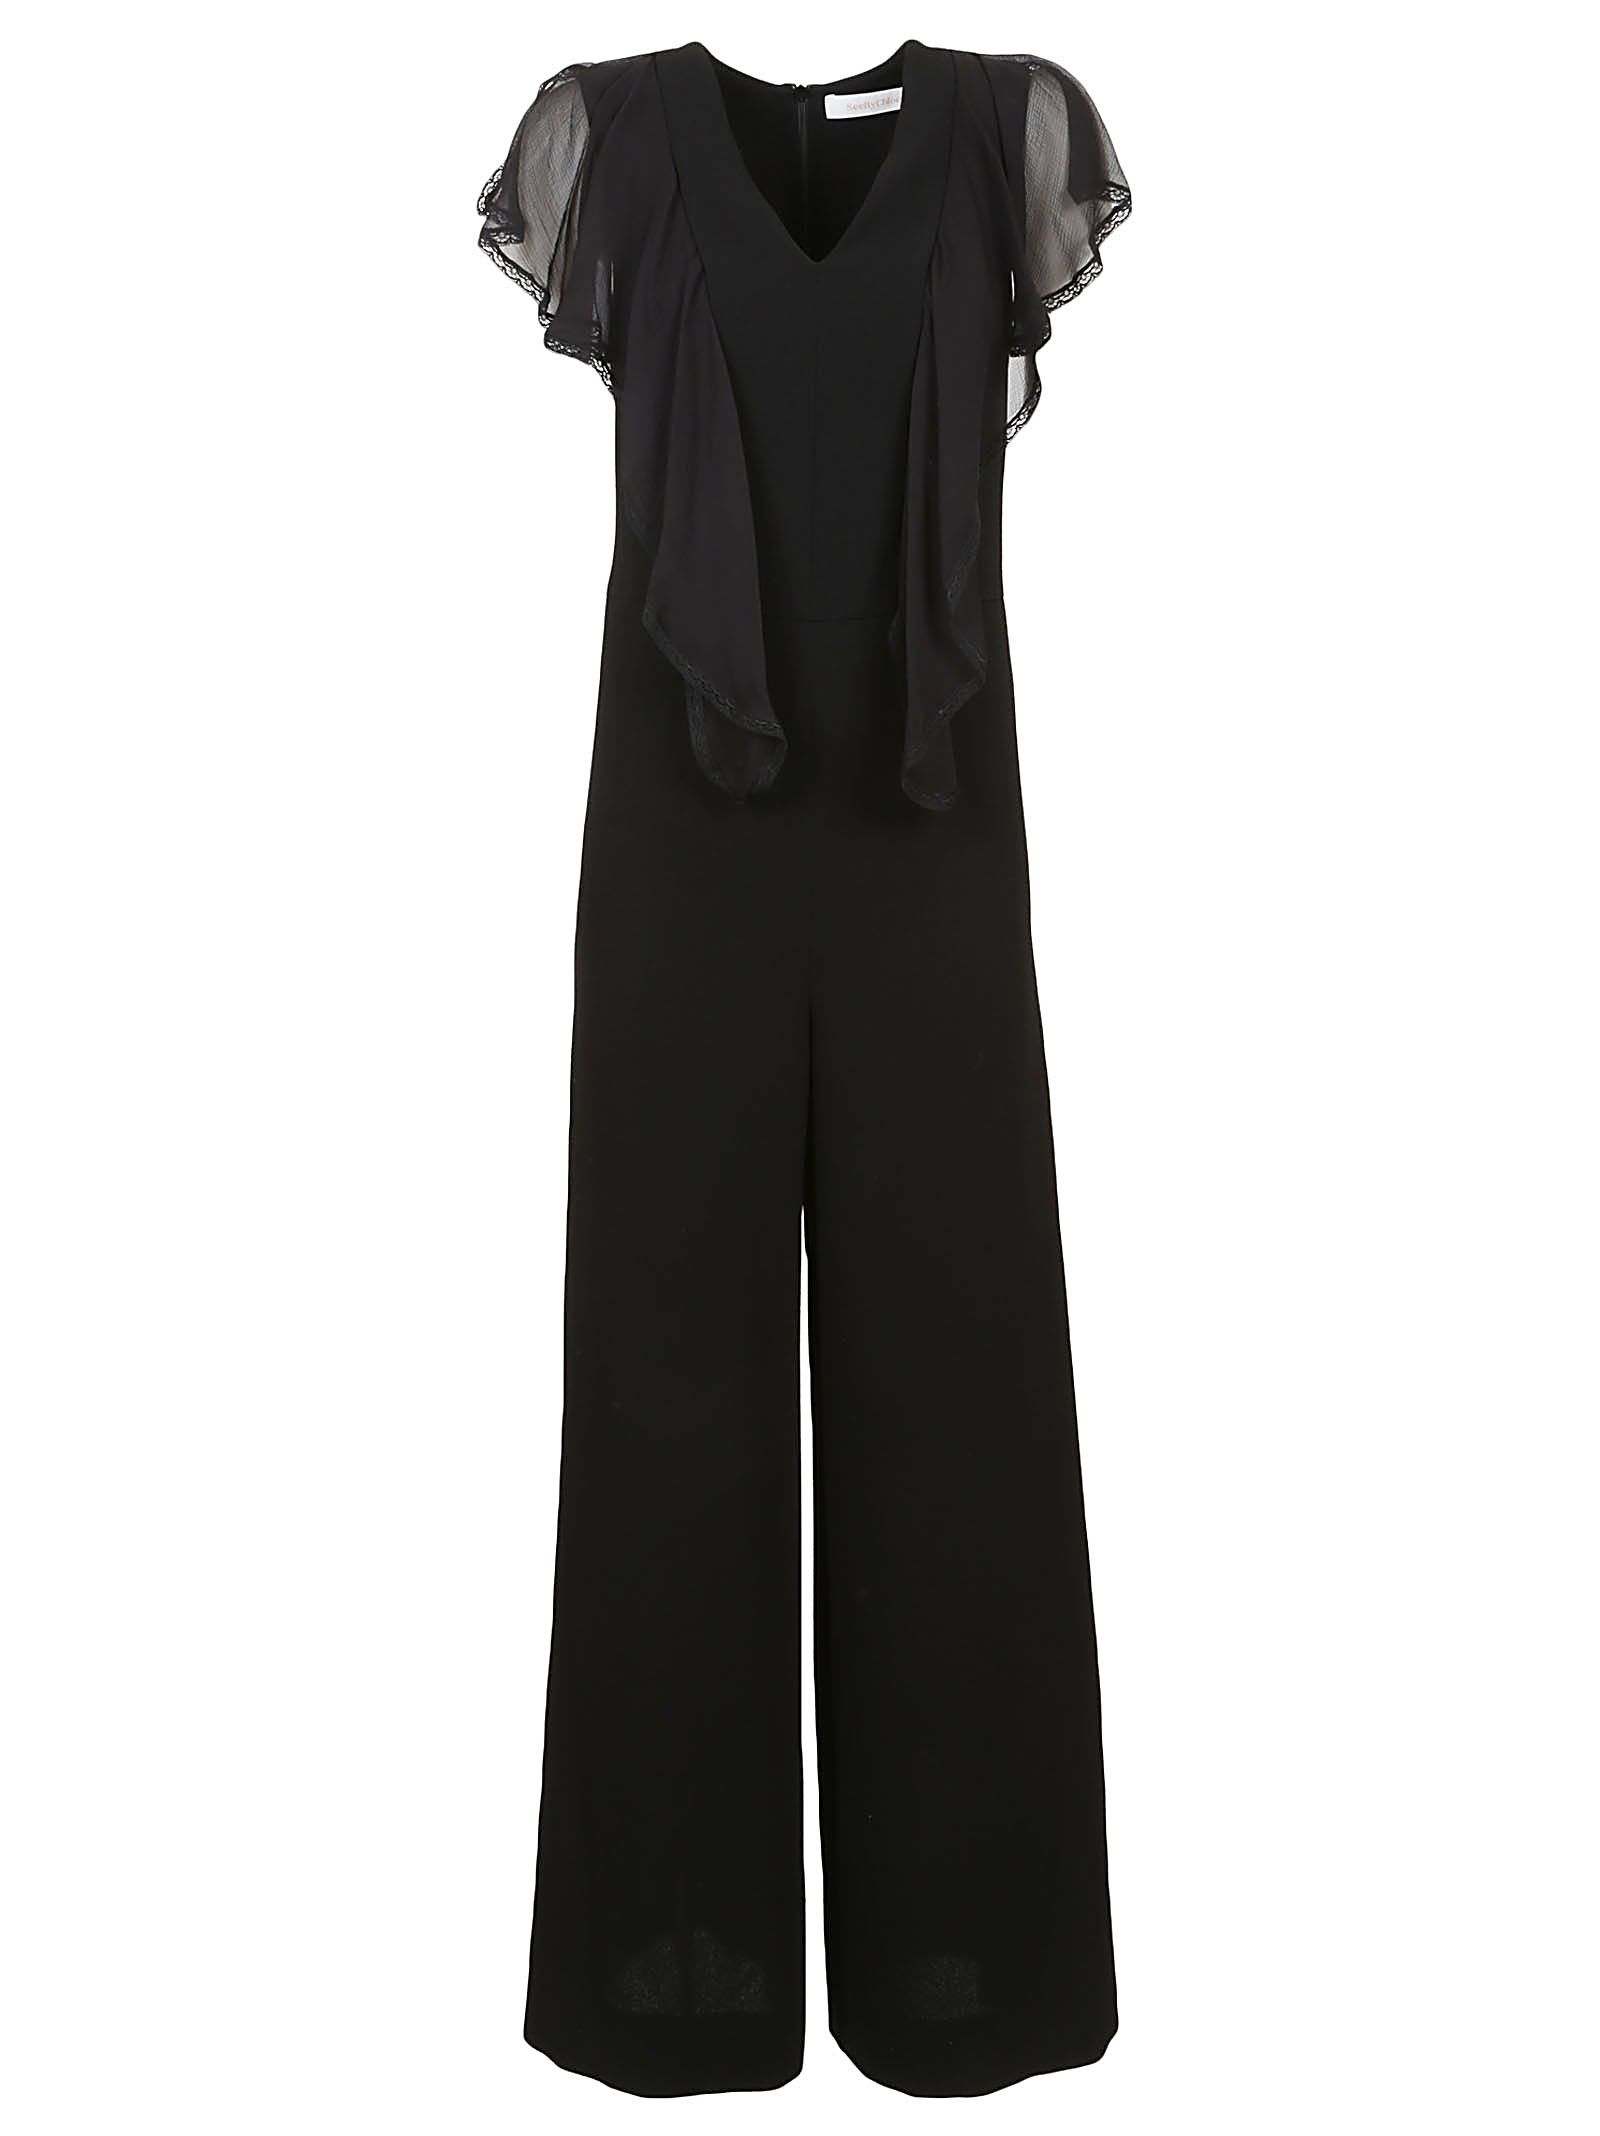 SEE BY CHLOÉ EVENING JUMPSUIT